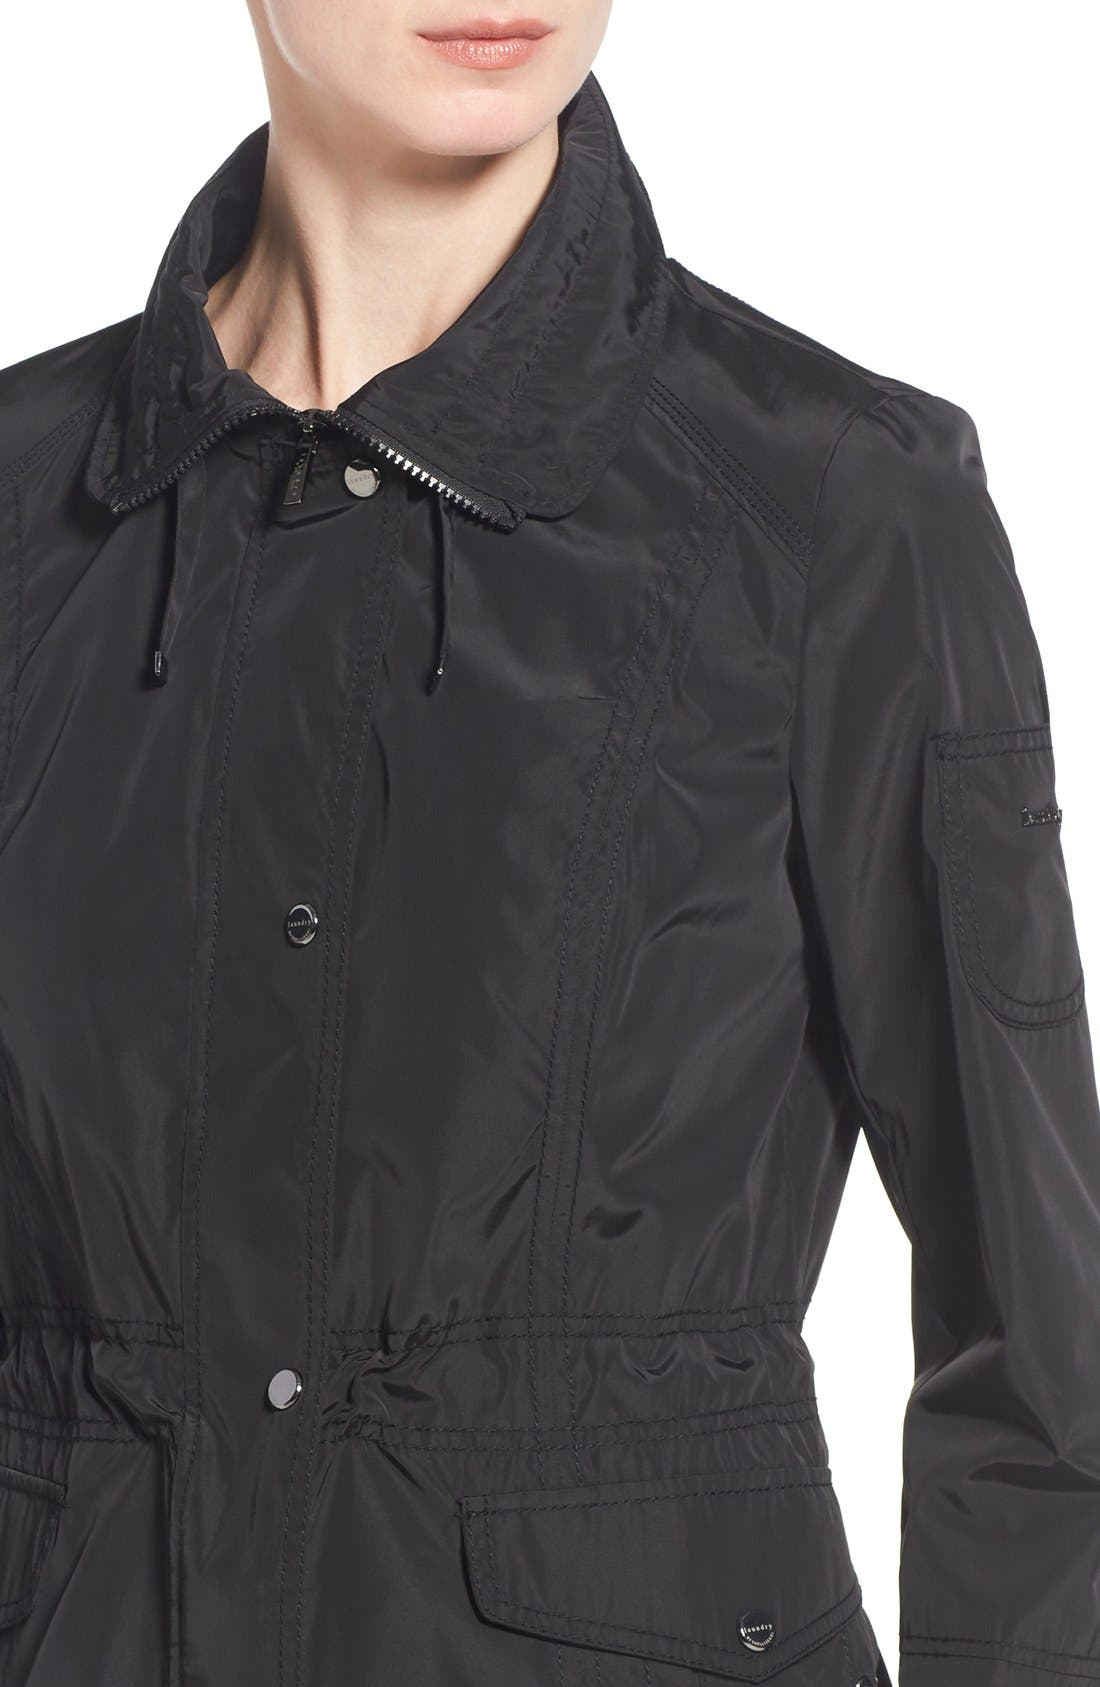 Windbreaker with Lace-Up Sides,                             Alternate thumbnail 5, color,                             001